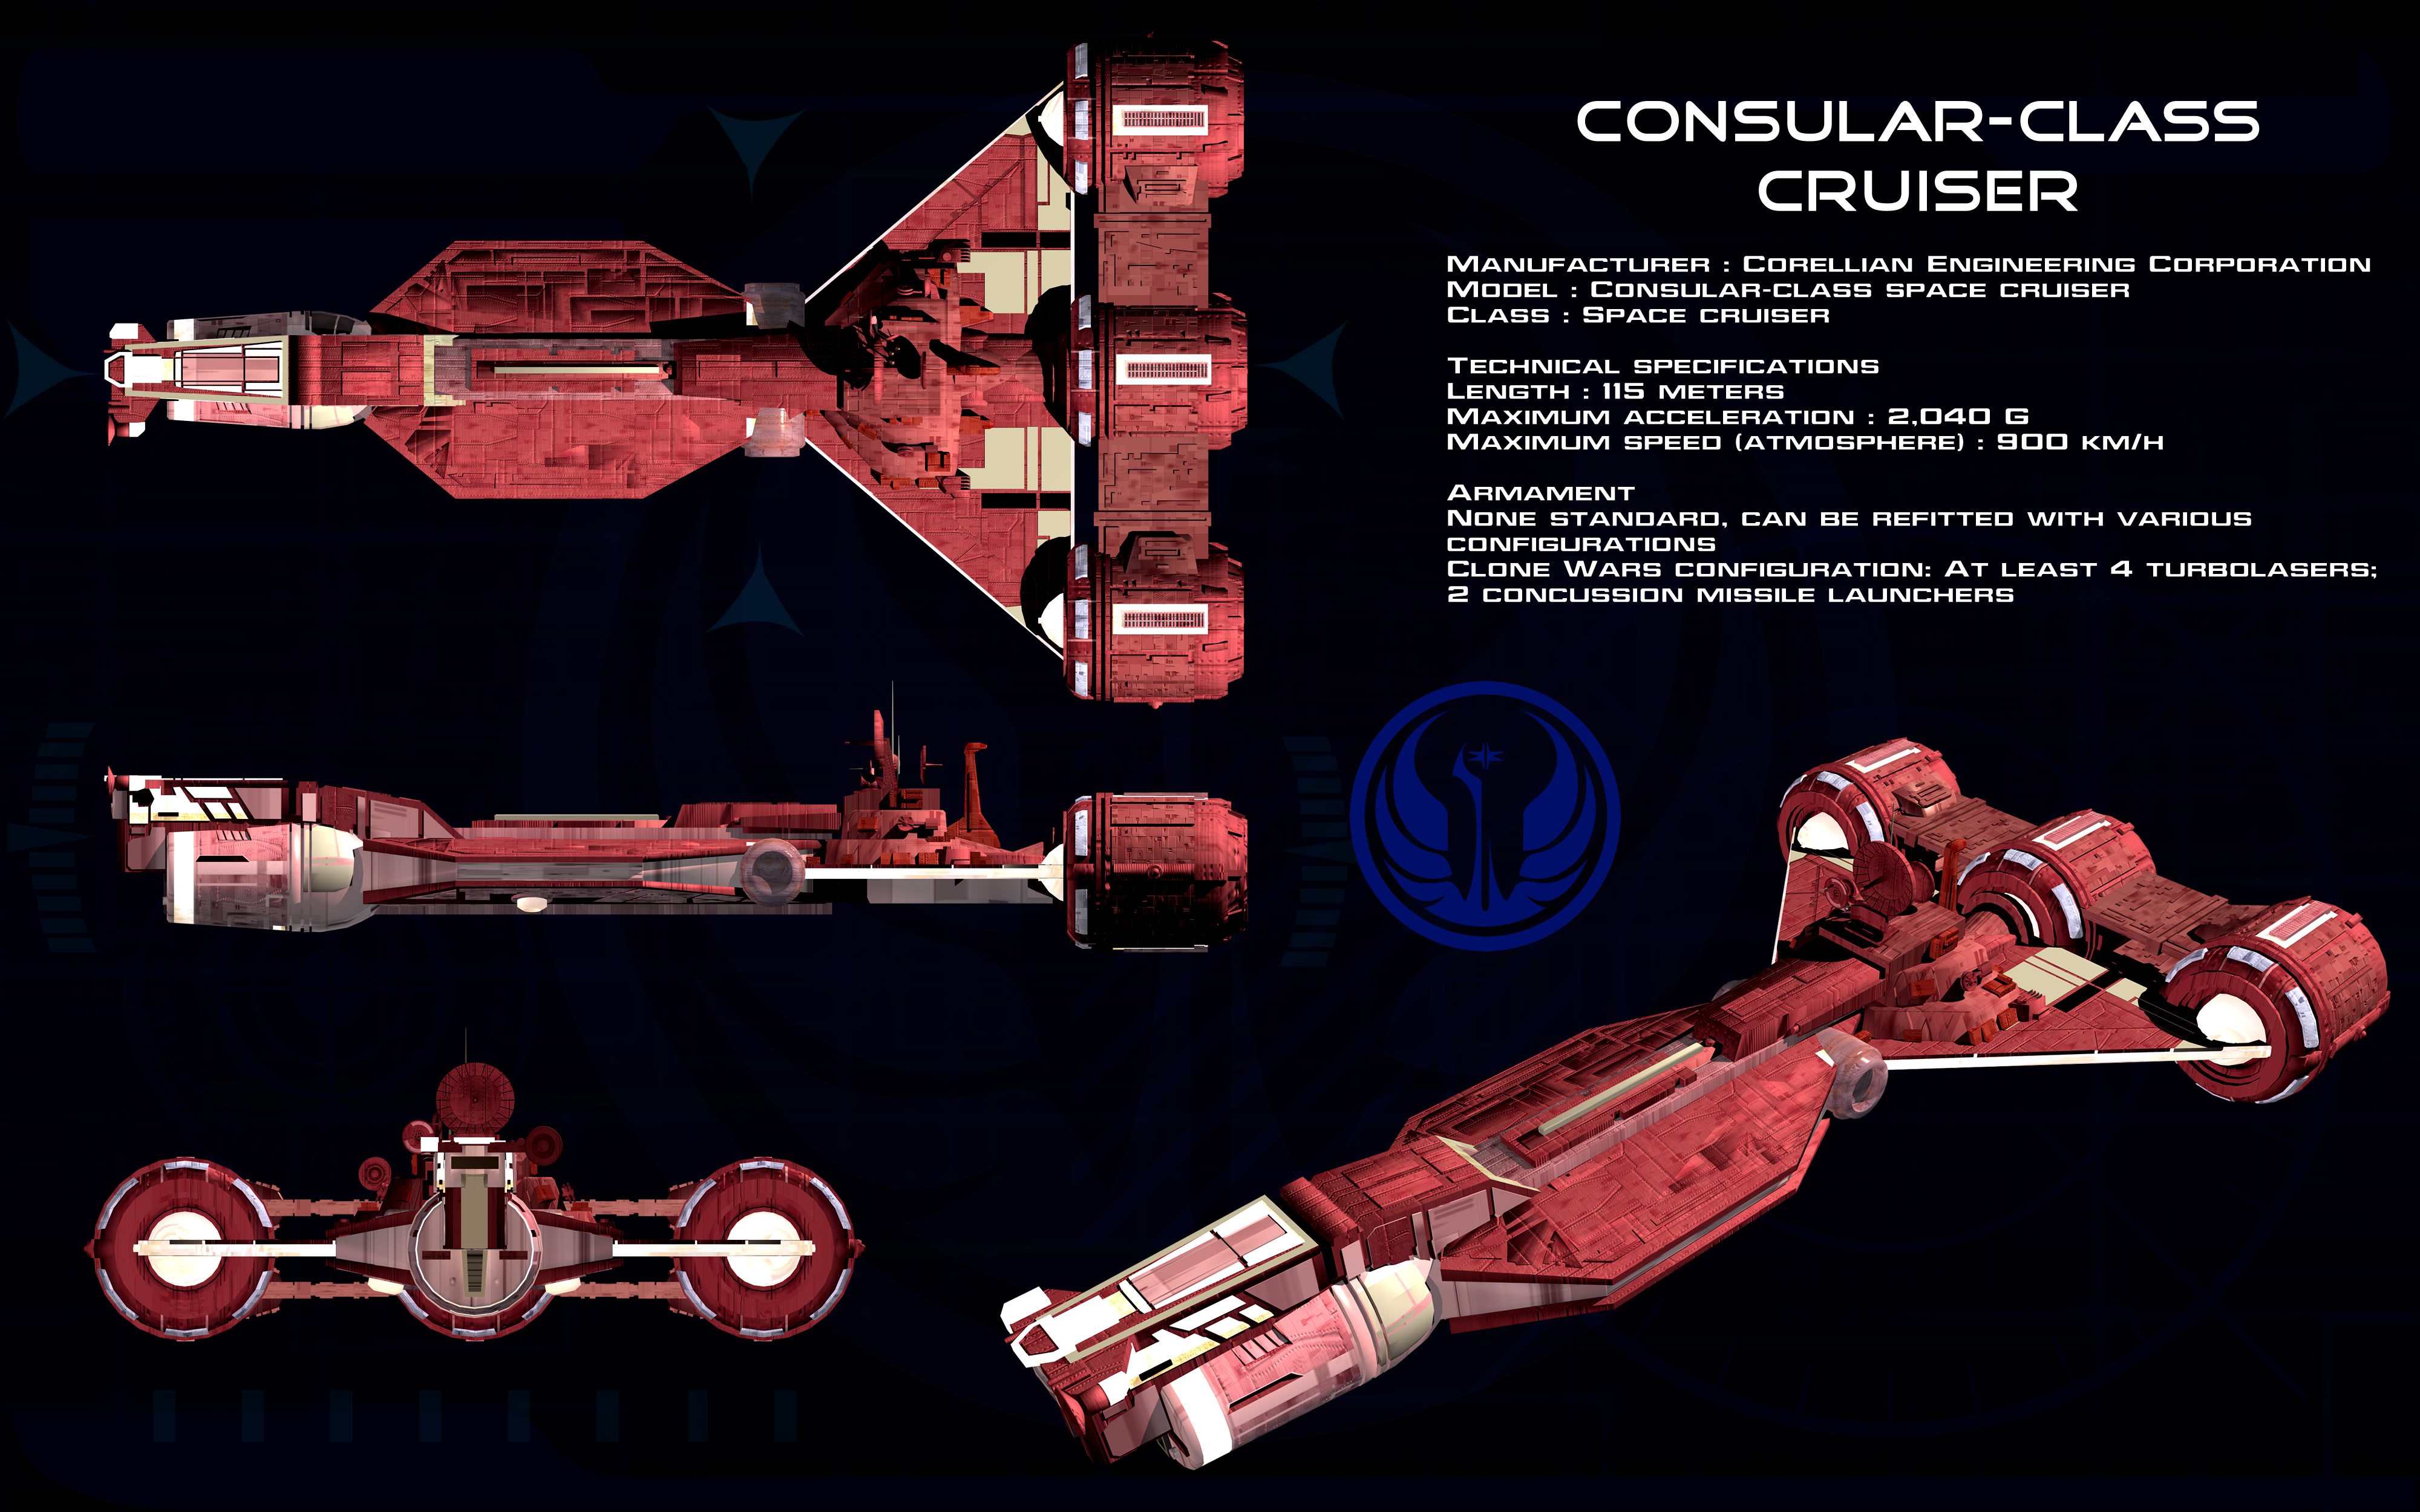 consular_class_cruiser_ortho_by_unusualsuspex-d6w4ags.jpg